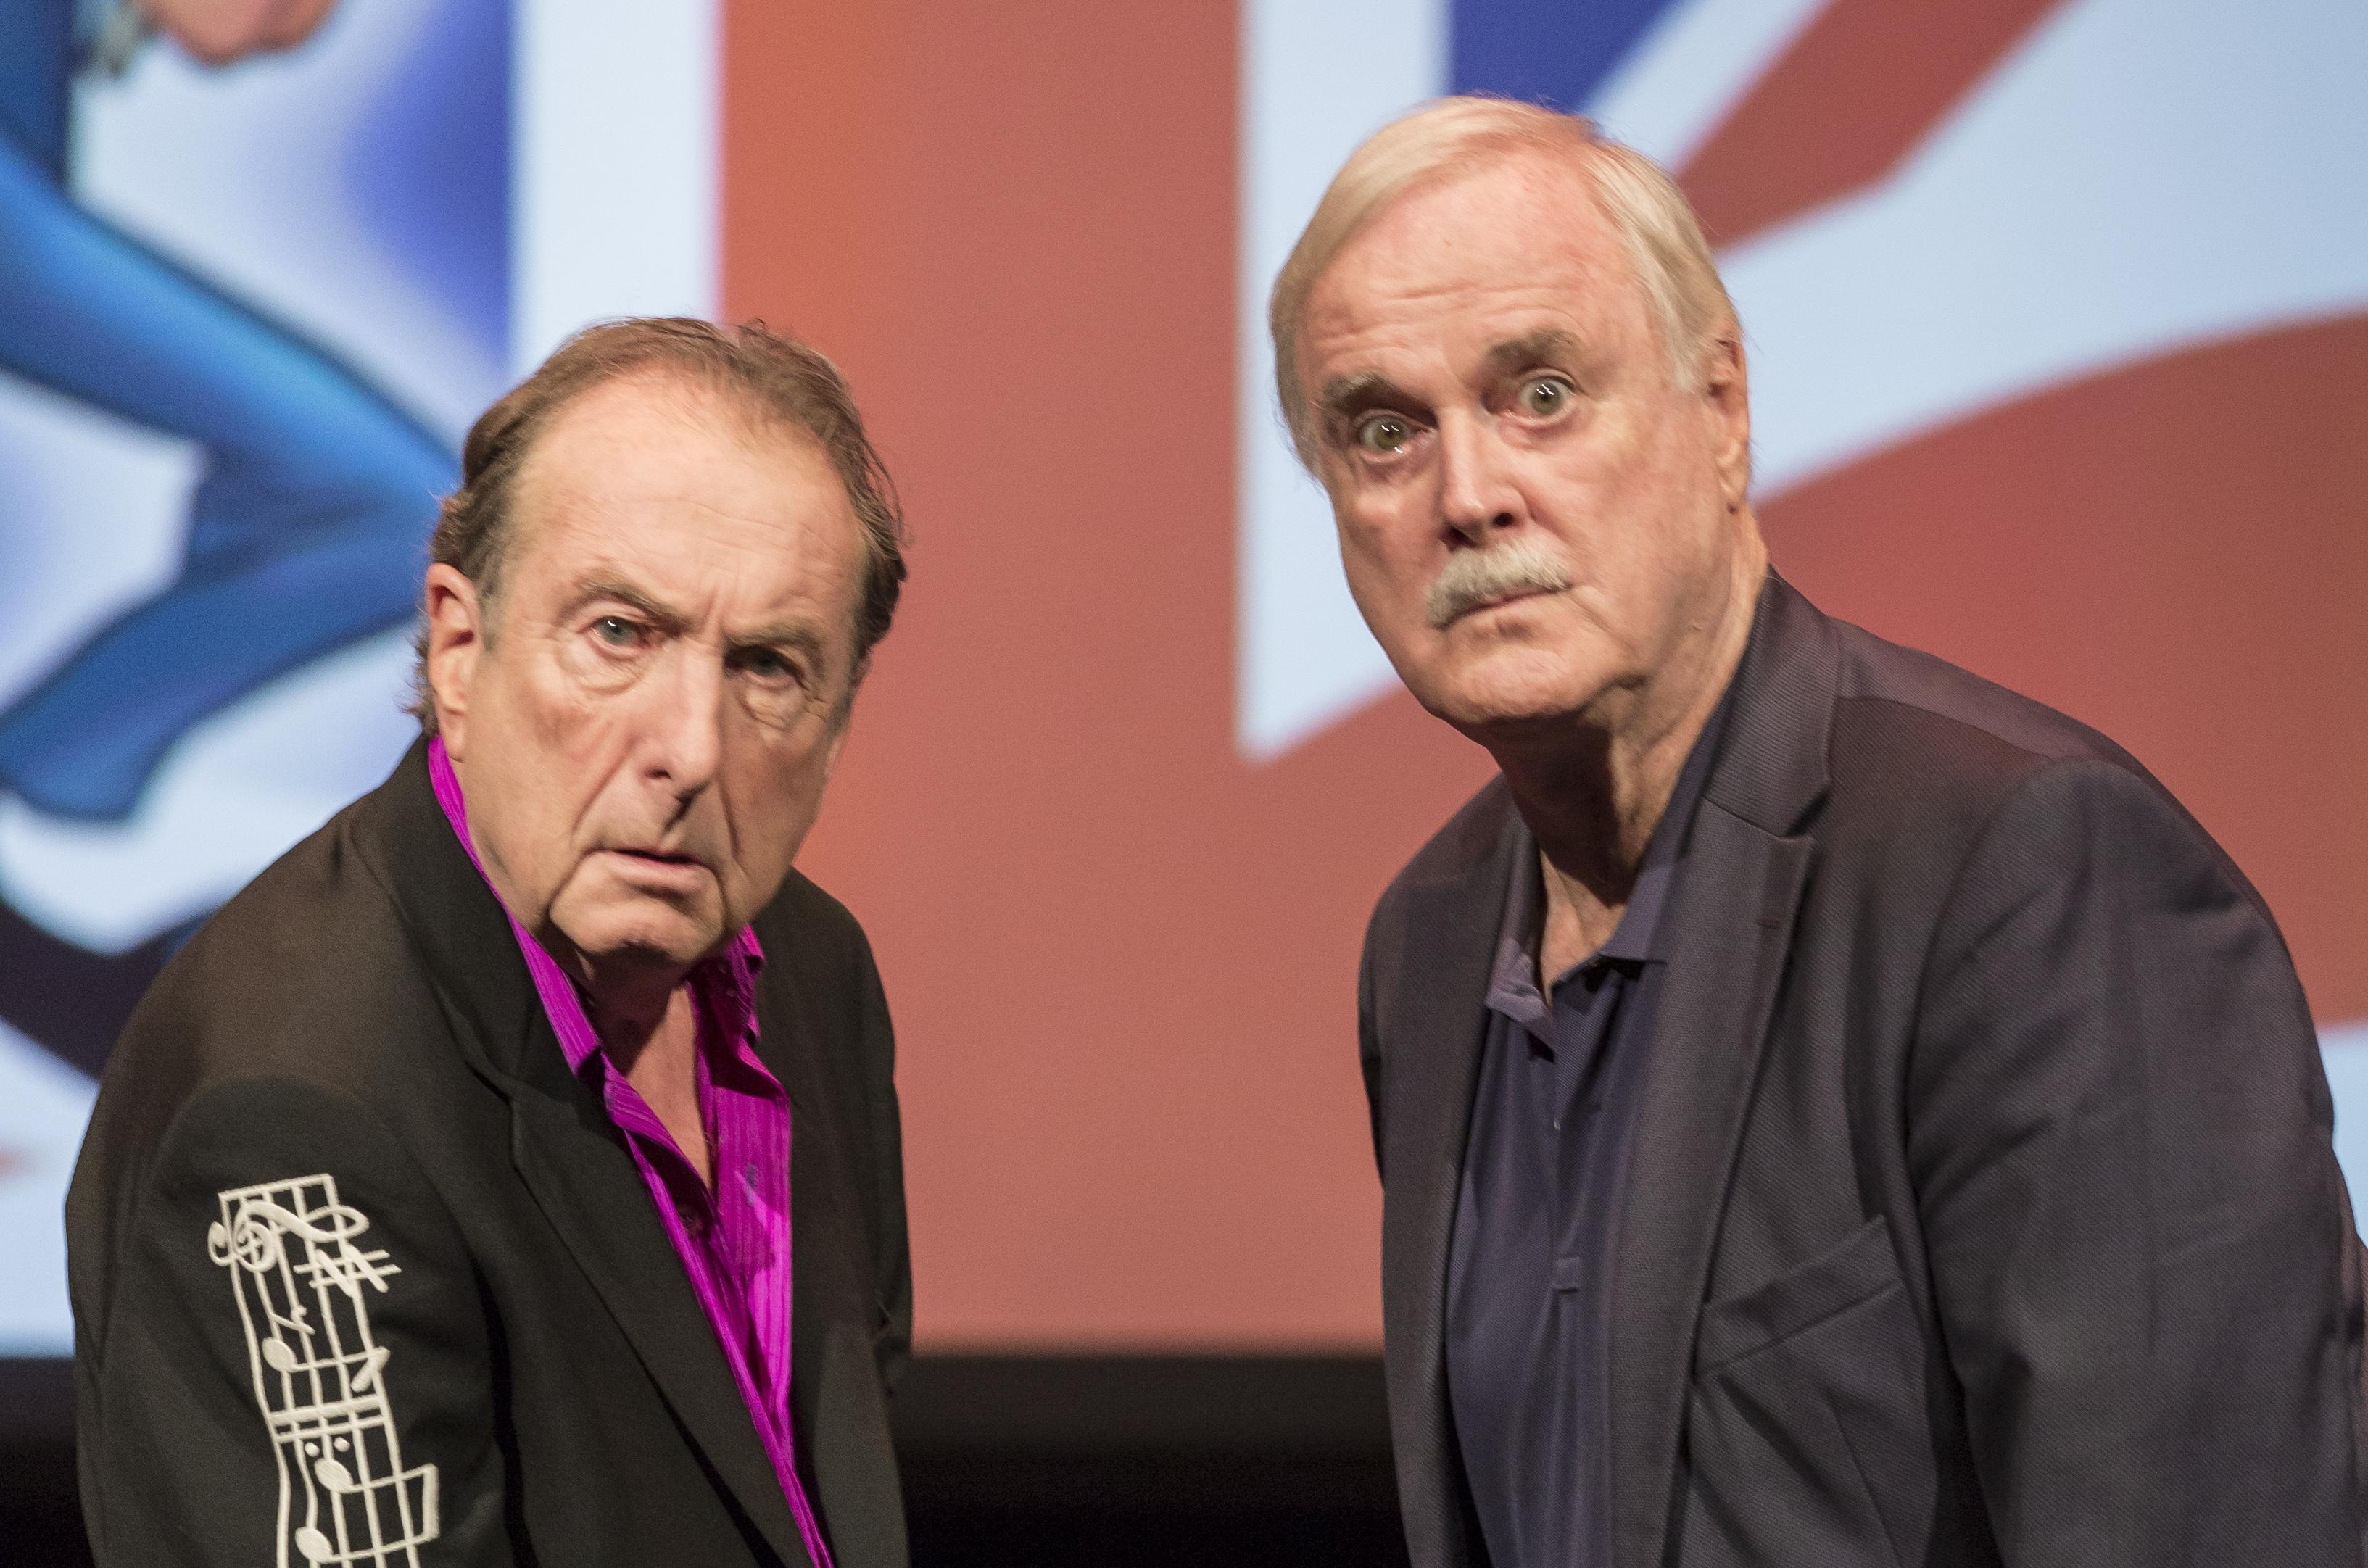 John Cleese And Eric Idle Perform In Sarasota Florida In 2015 The Two Comedians